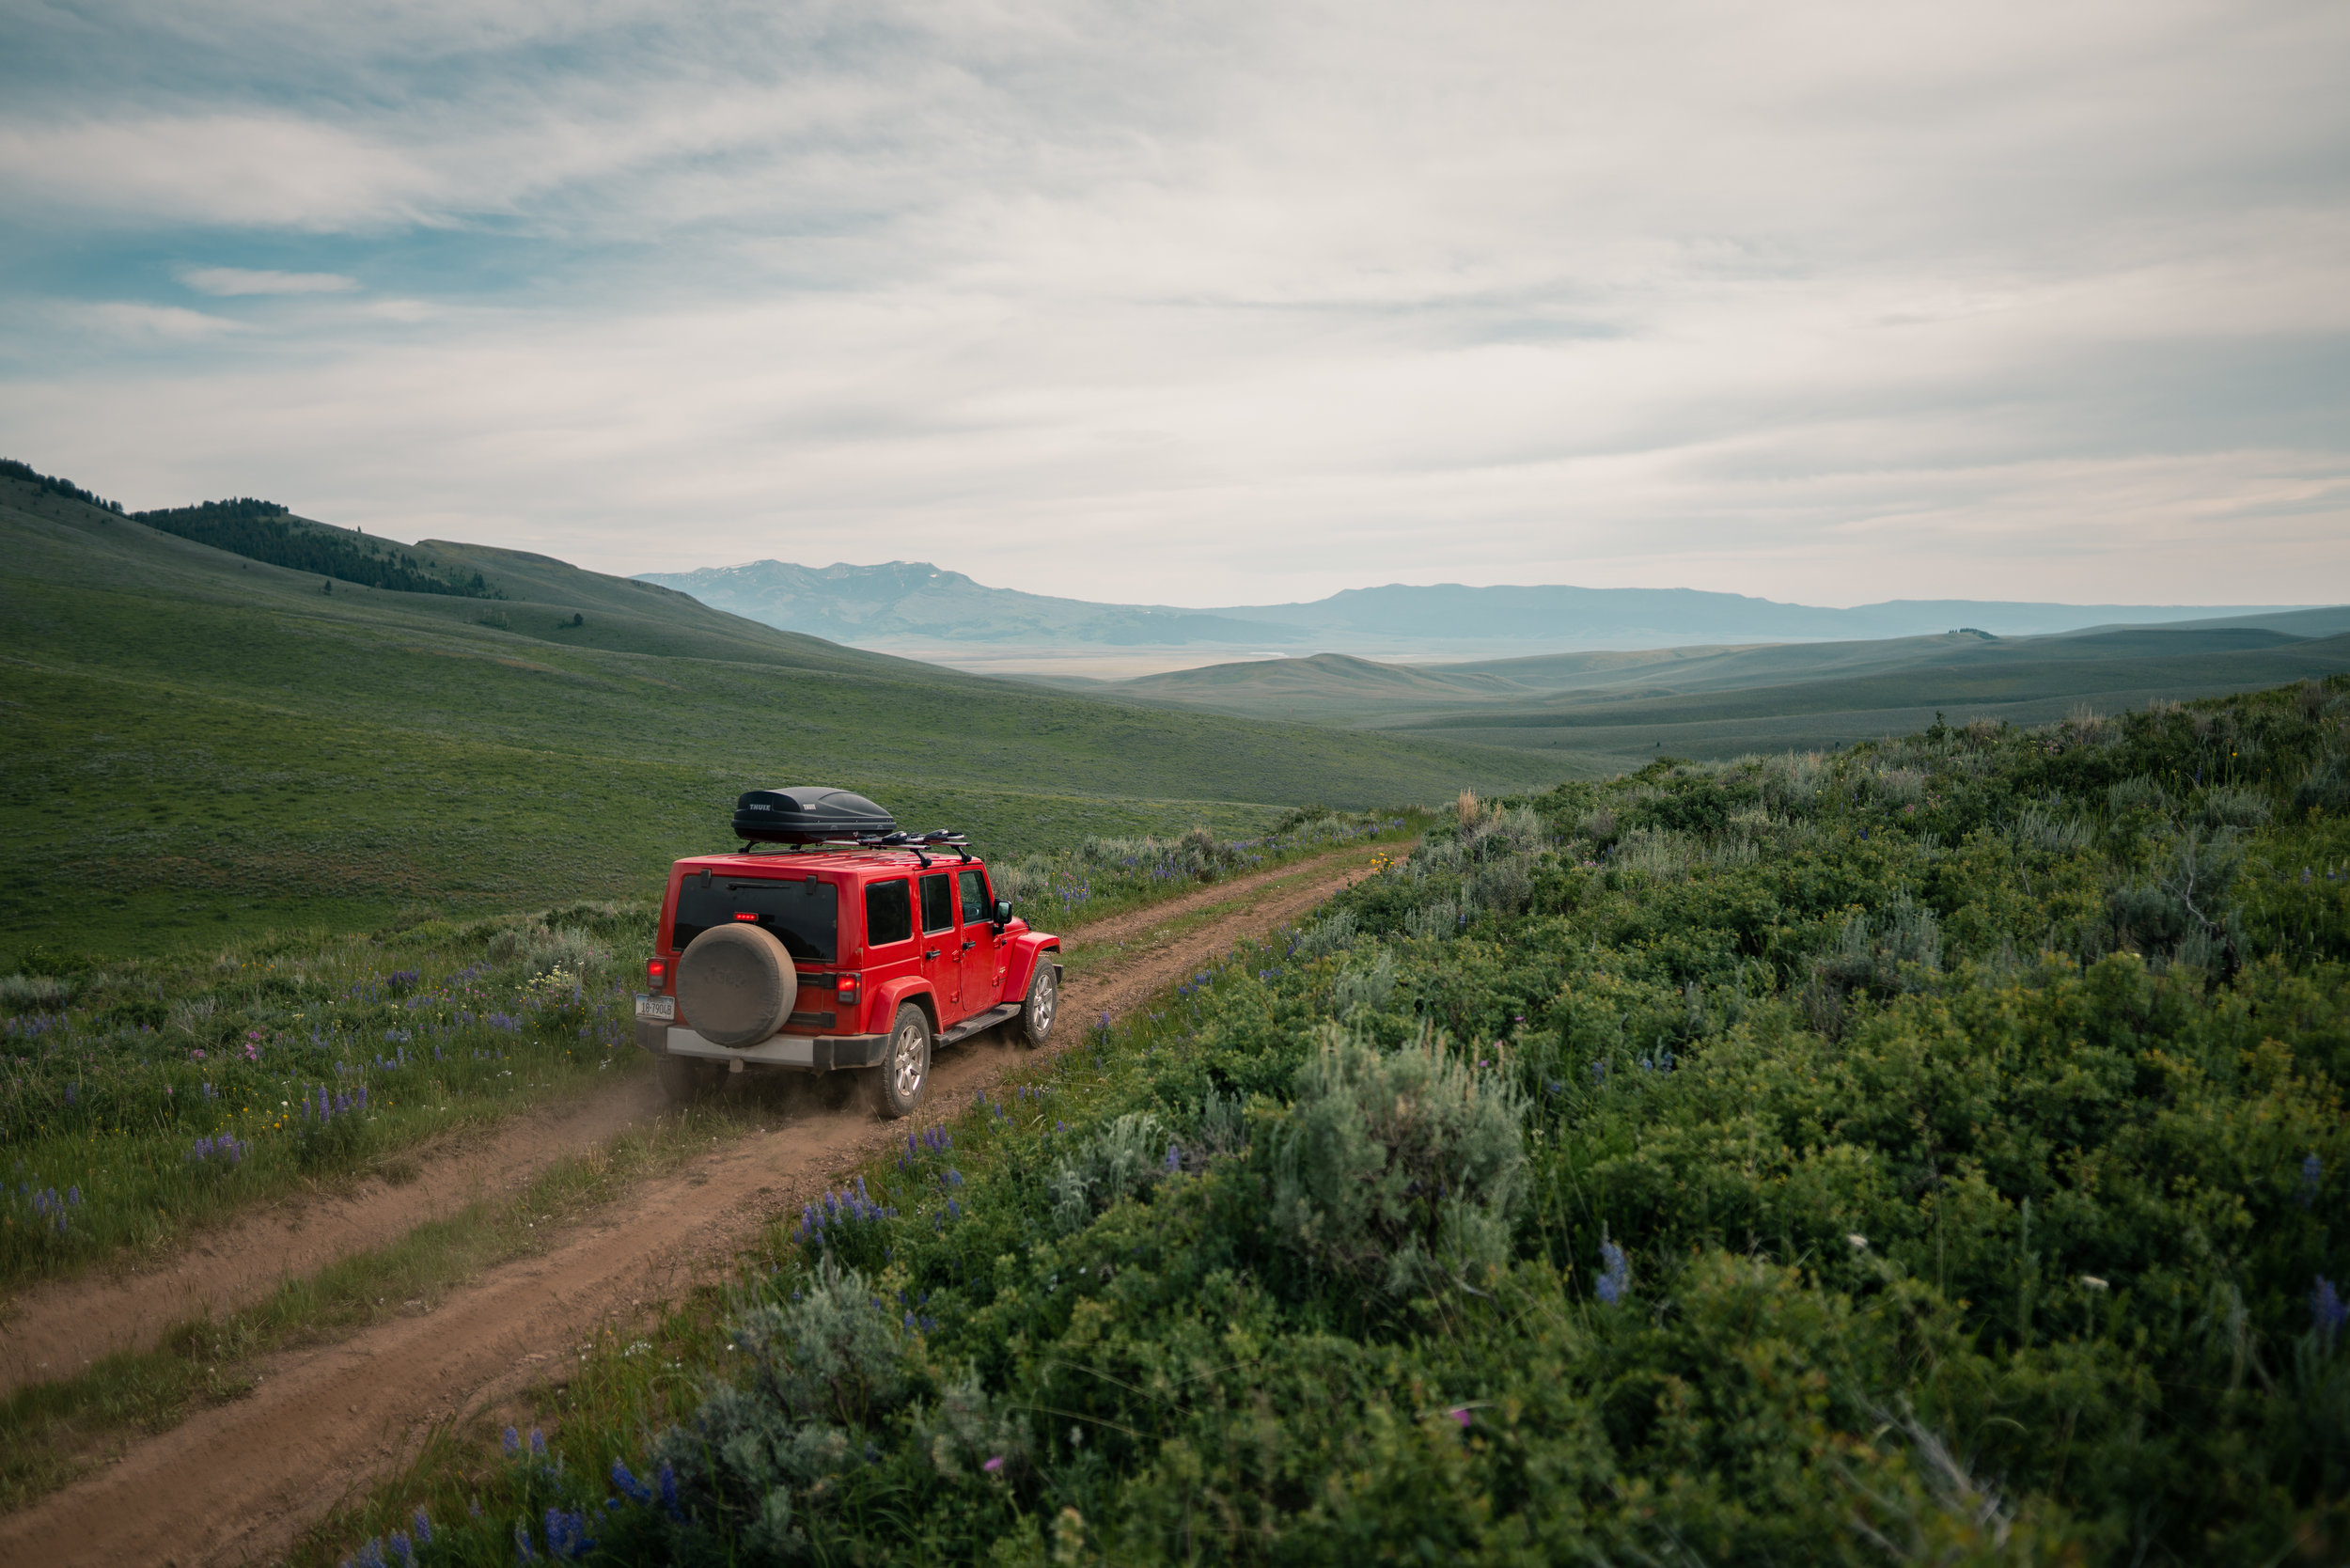 Driving her jeep into Montana's Centennial Valley.